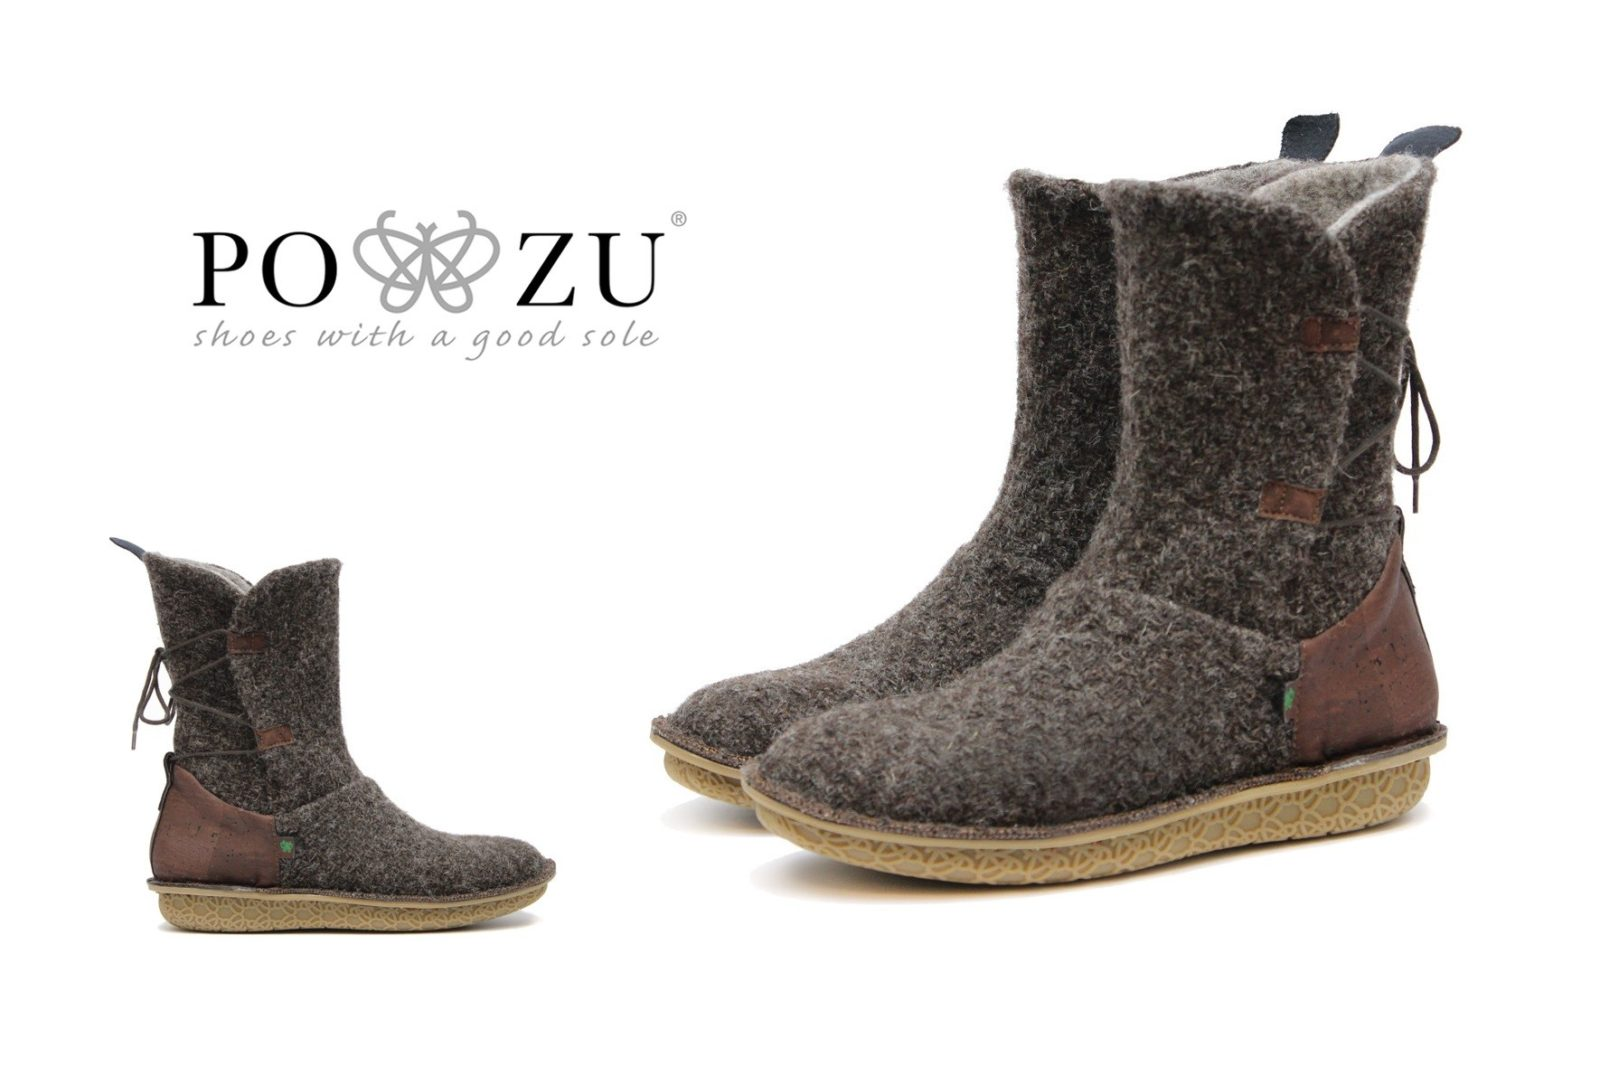 Save 25% off Po-Zu Piper V 'Rey' boots